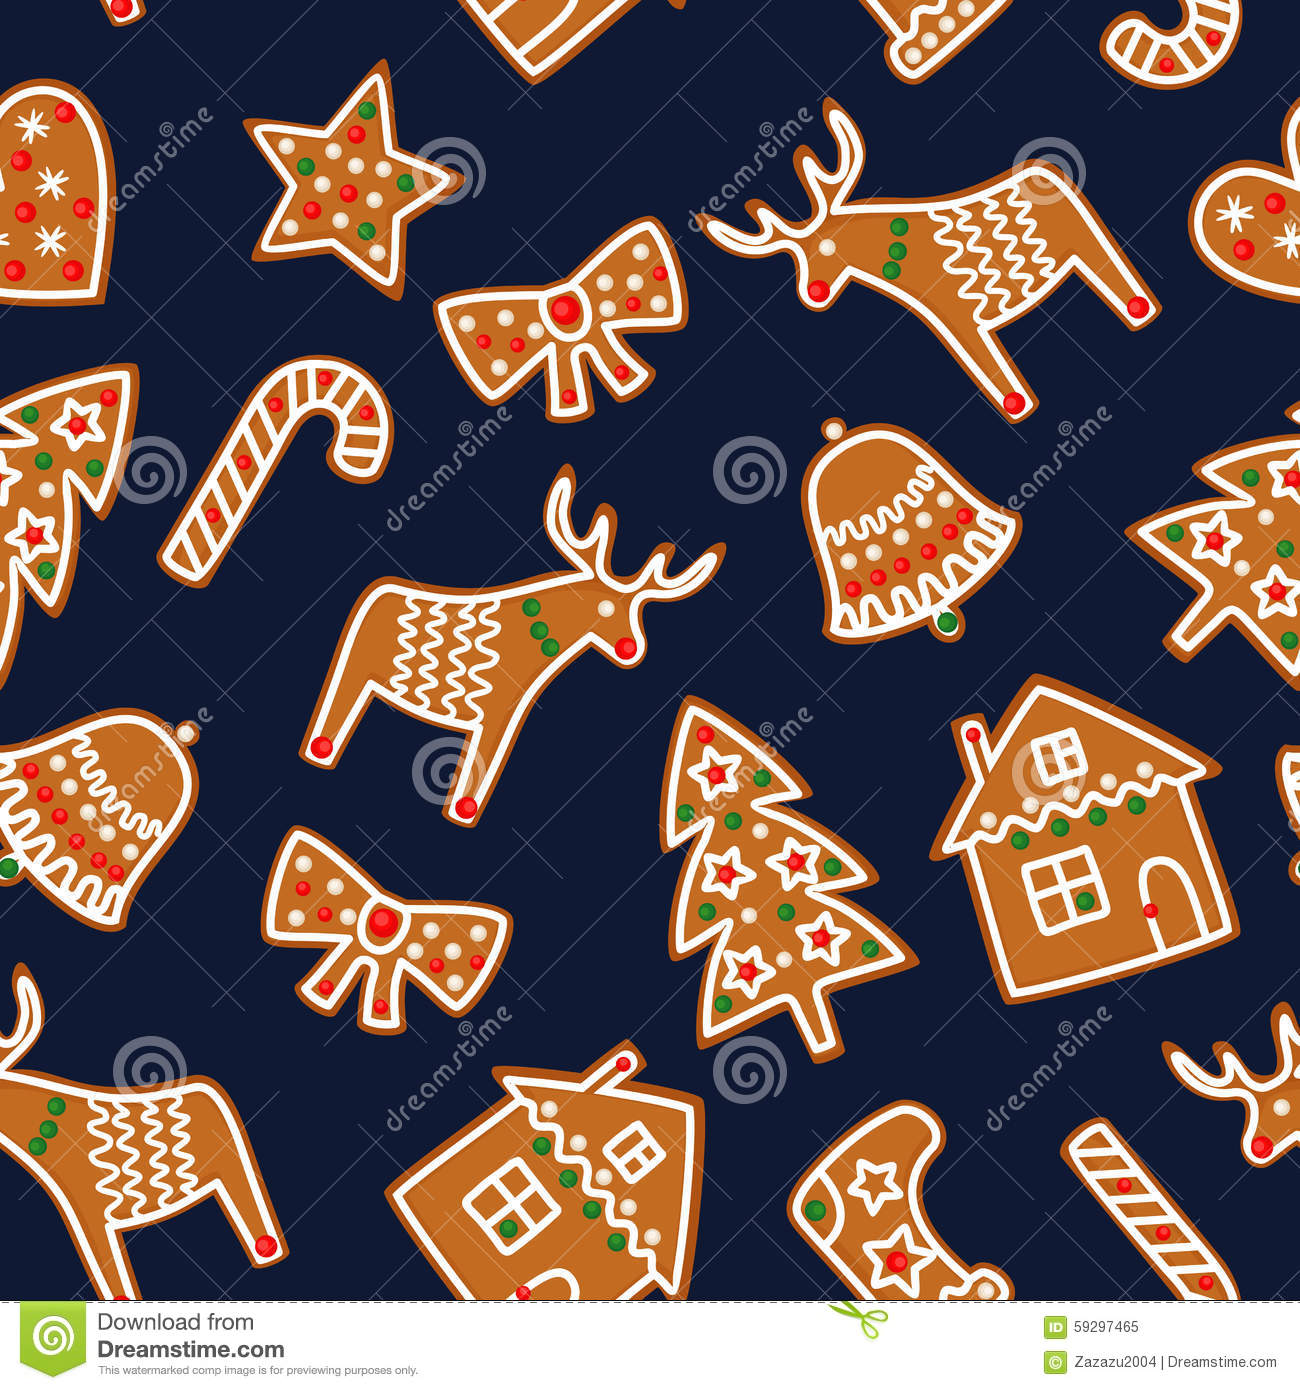 Cute Seamless pattern with Christmas gingerbread cookies - xmas tree, candy cane, bell, sock, star, house, bow, heart, deer. Cute